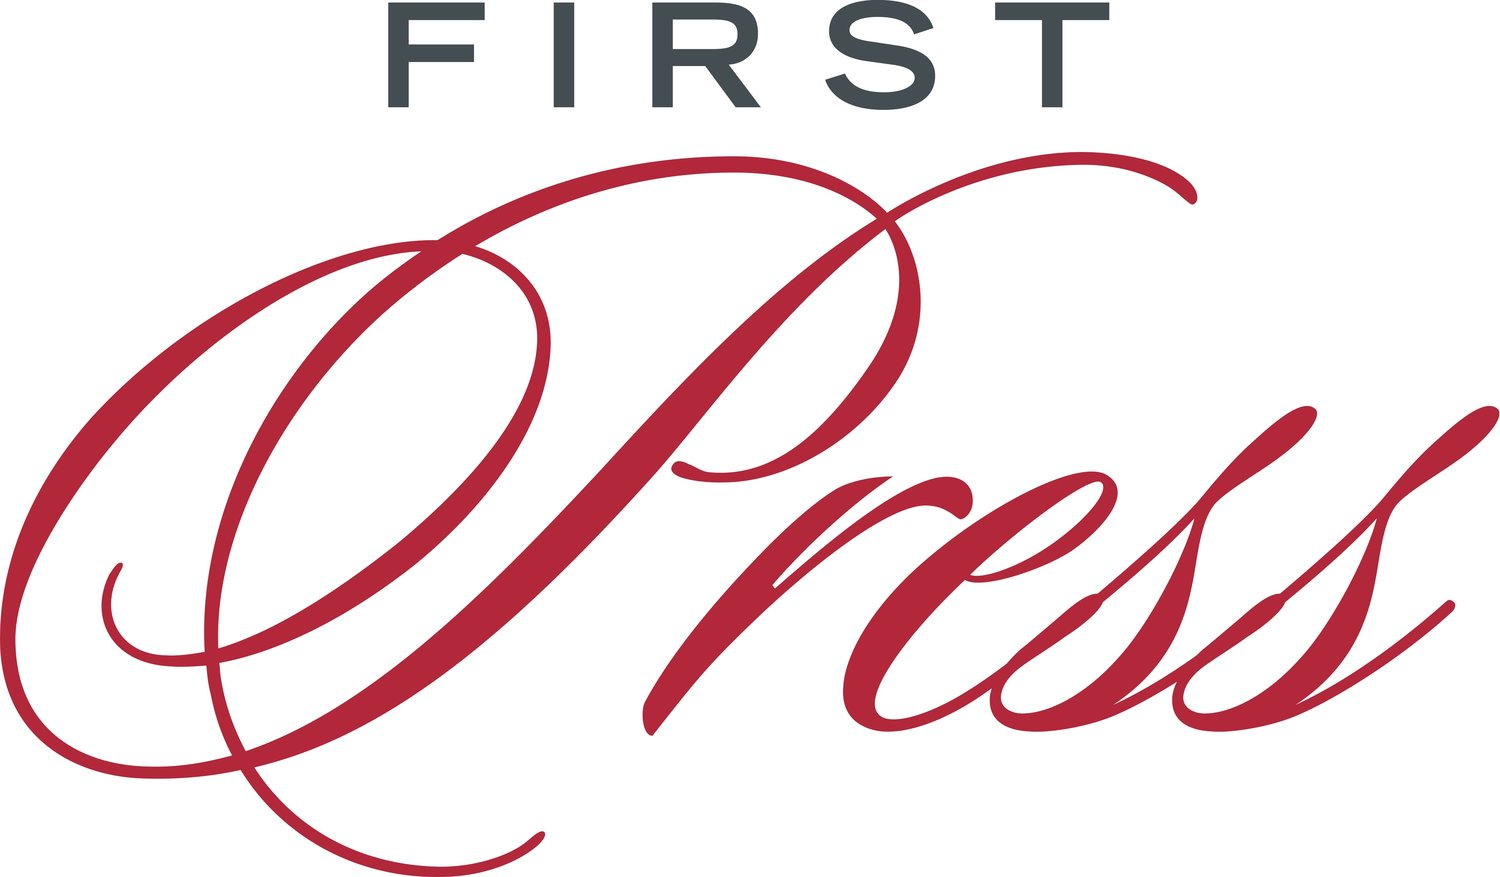 First Press Public Relations